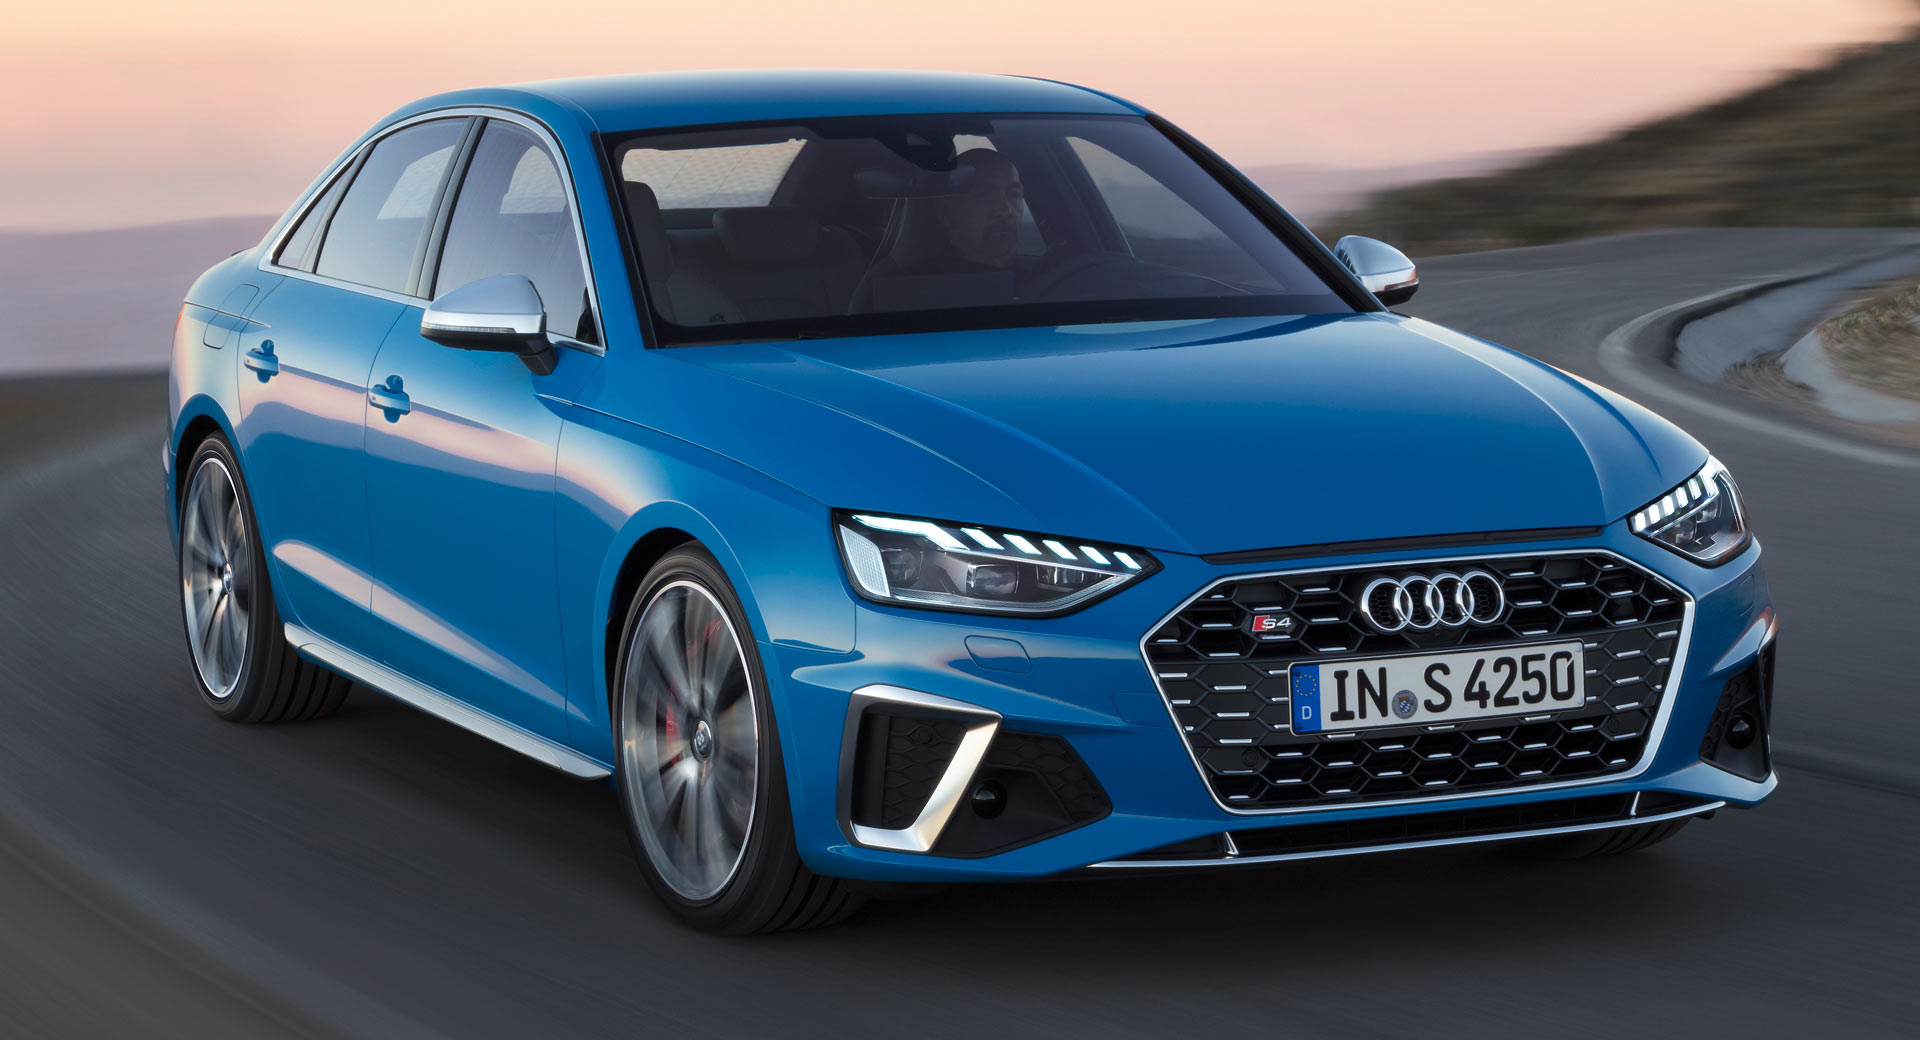 2020 Audi S4 Price, Design and Review